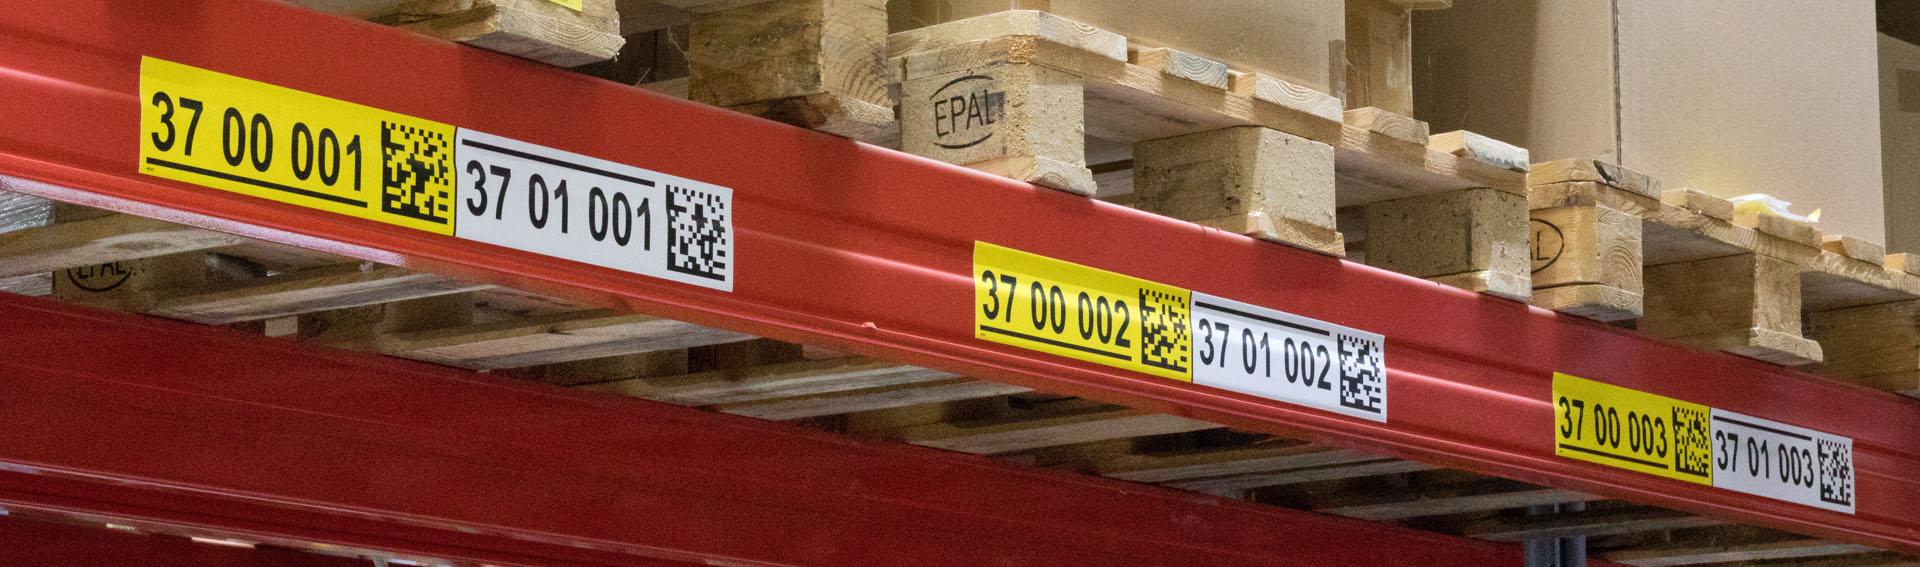 ONE2ID magazijnlabels stellinglabels met barcode